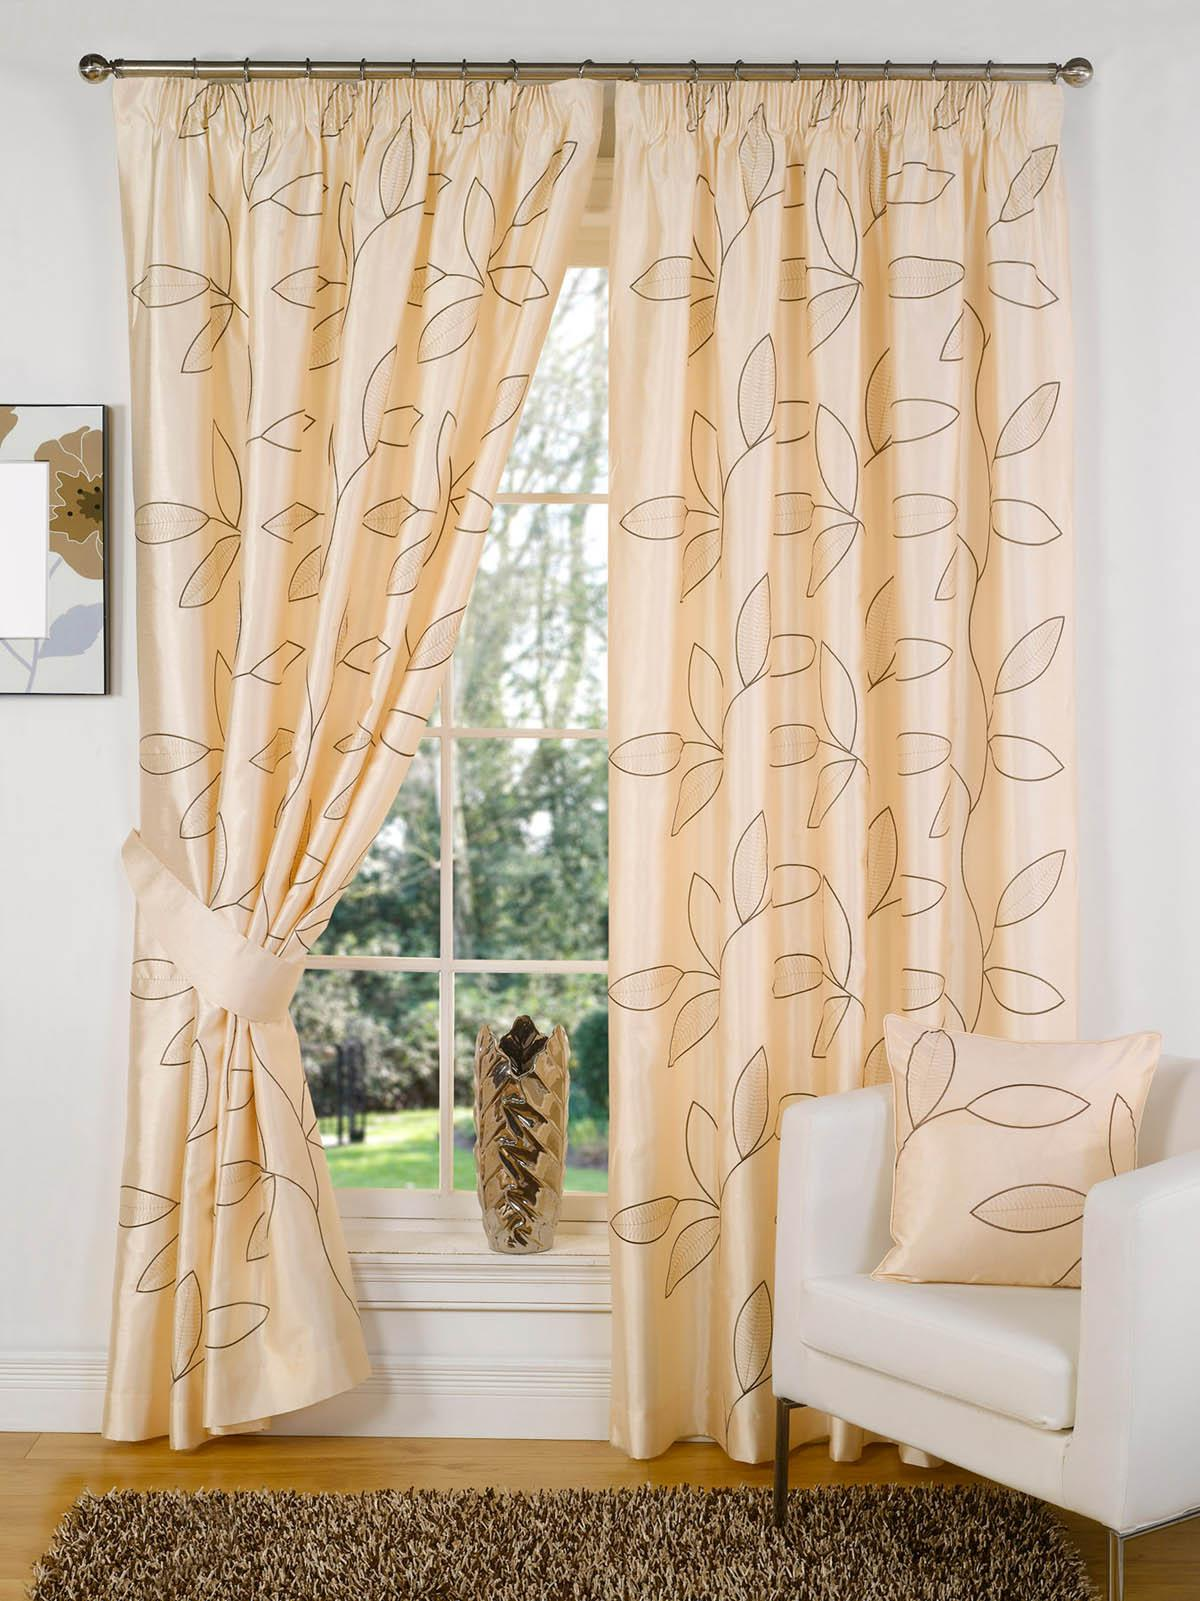 Luxury Interior Home Decorating Ideas with Embroidered Curtains: Lilac Velvet Curtains | Embroidered Linen Curtains | Embroidered Curtains